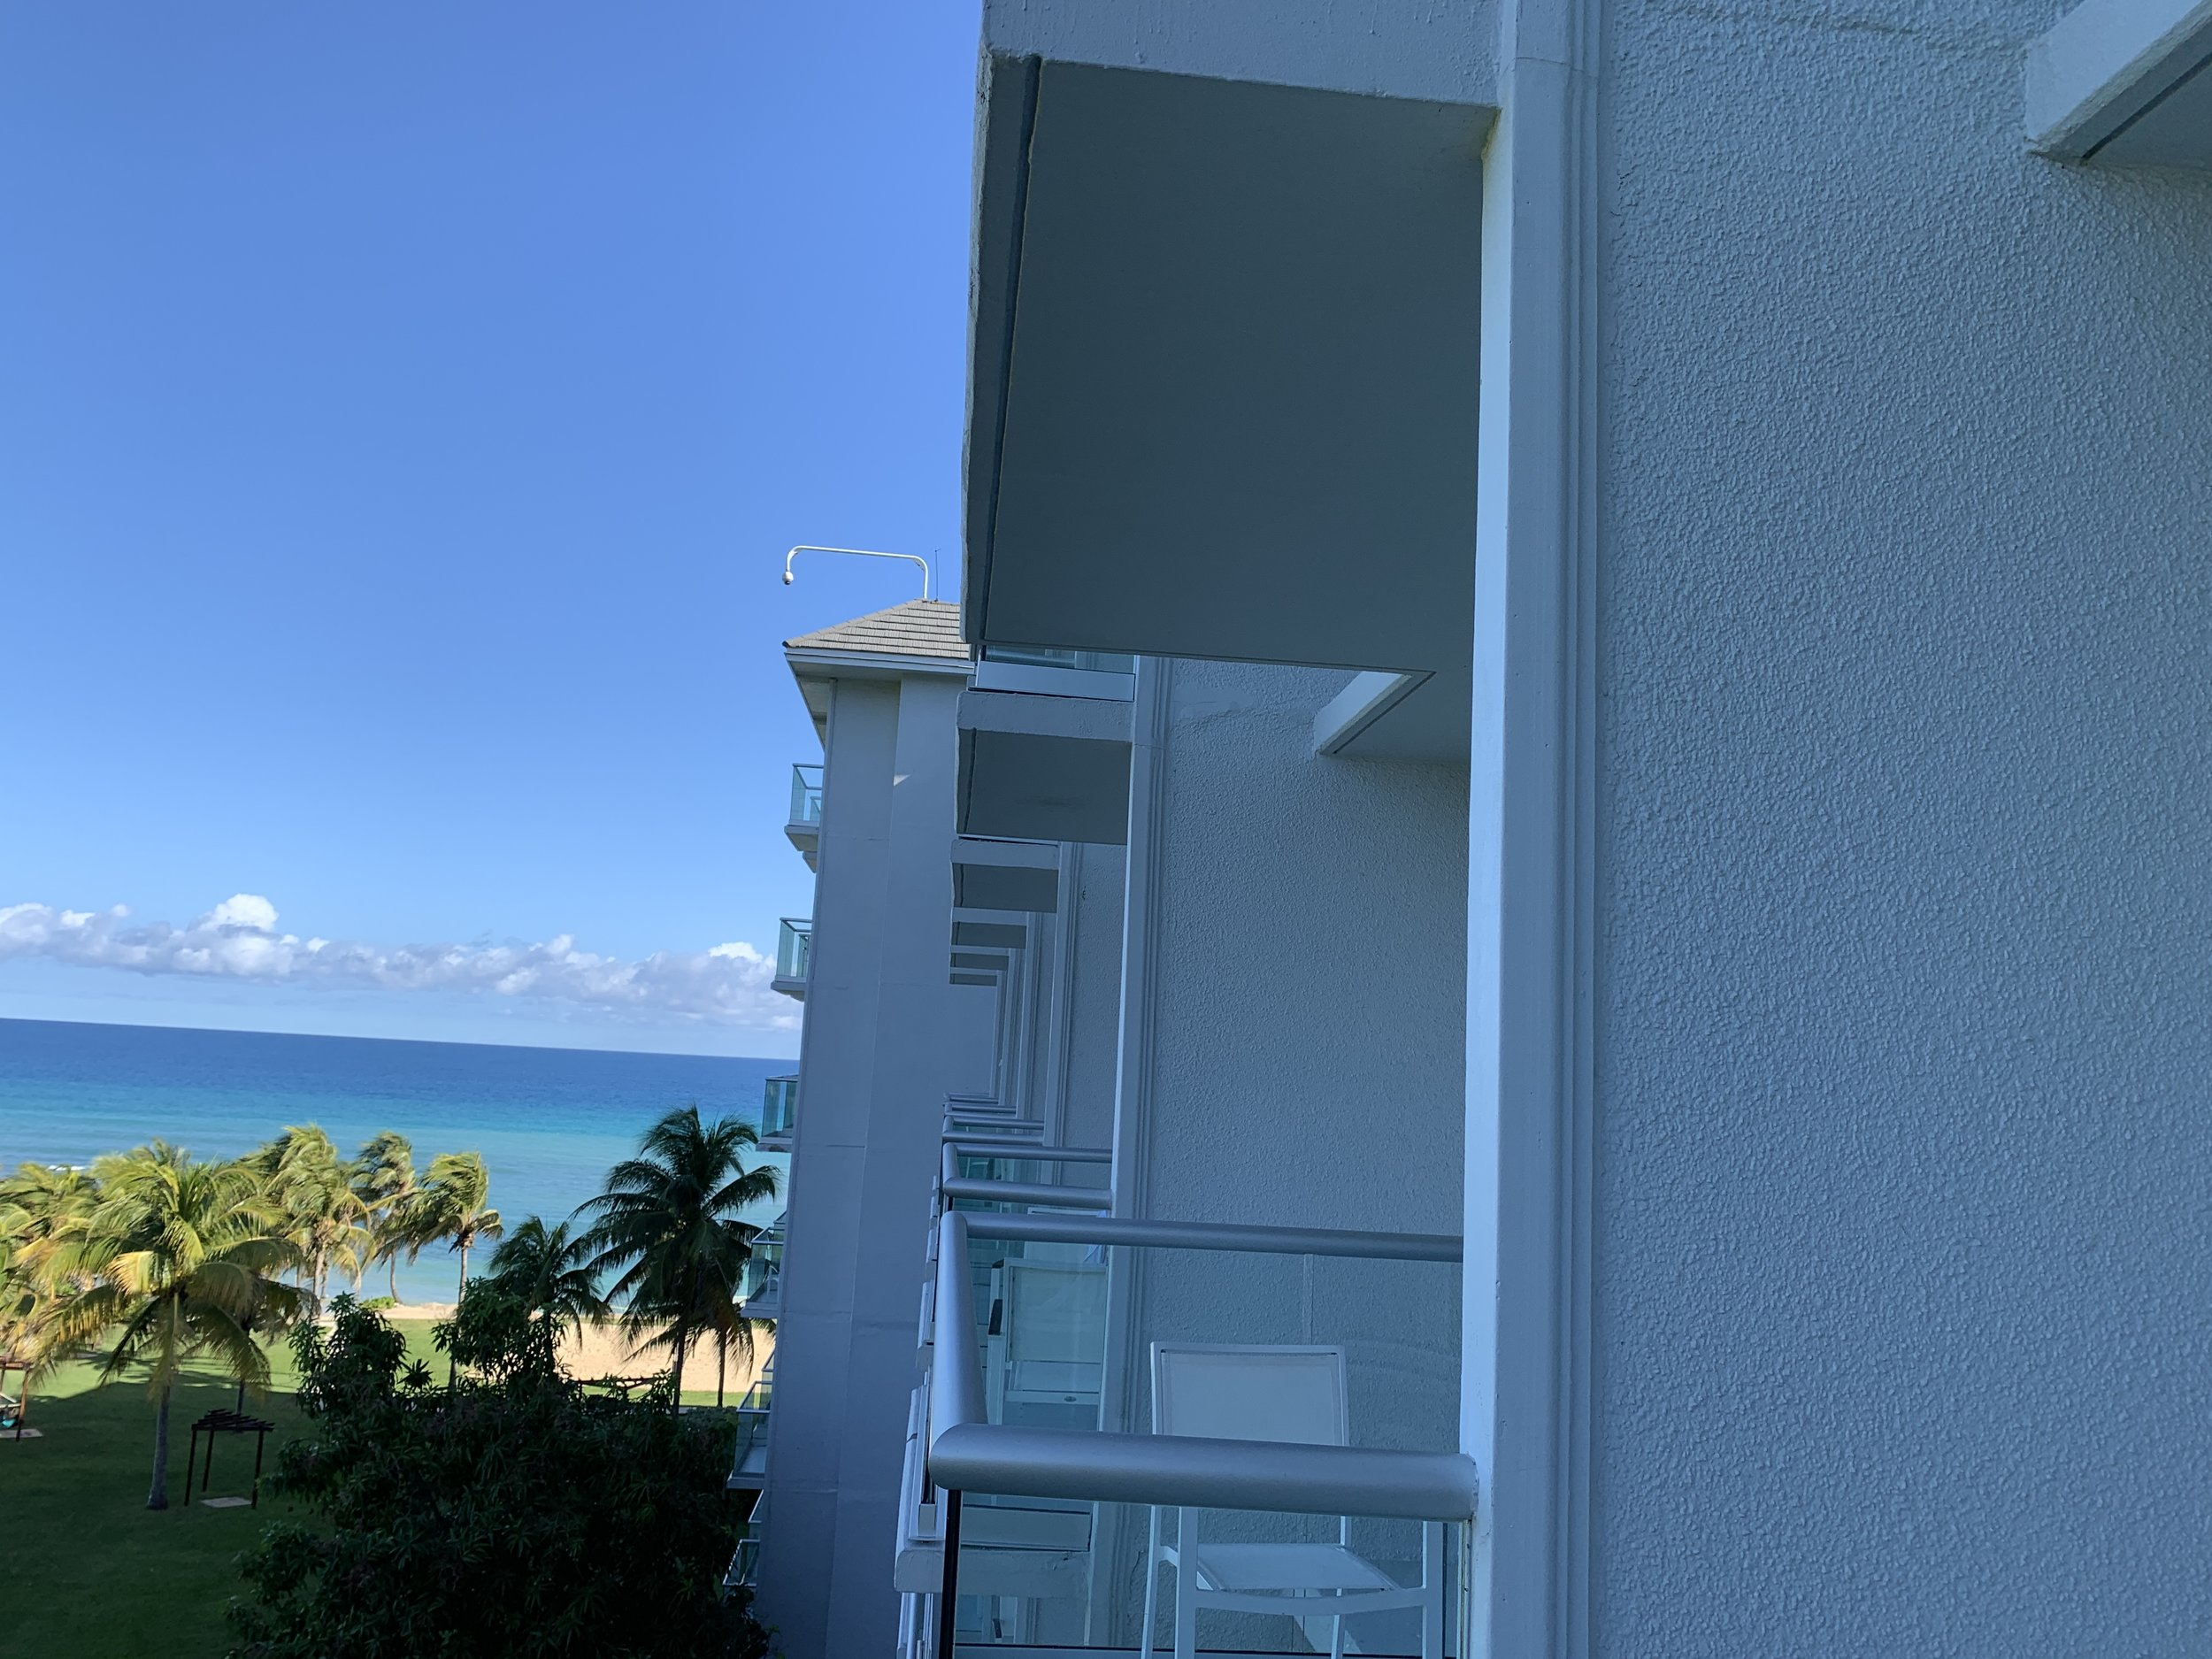 View of closeness to balconies and camera up above